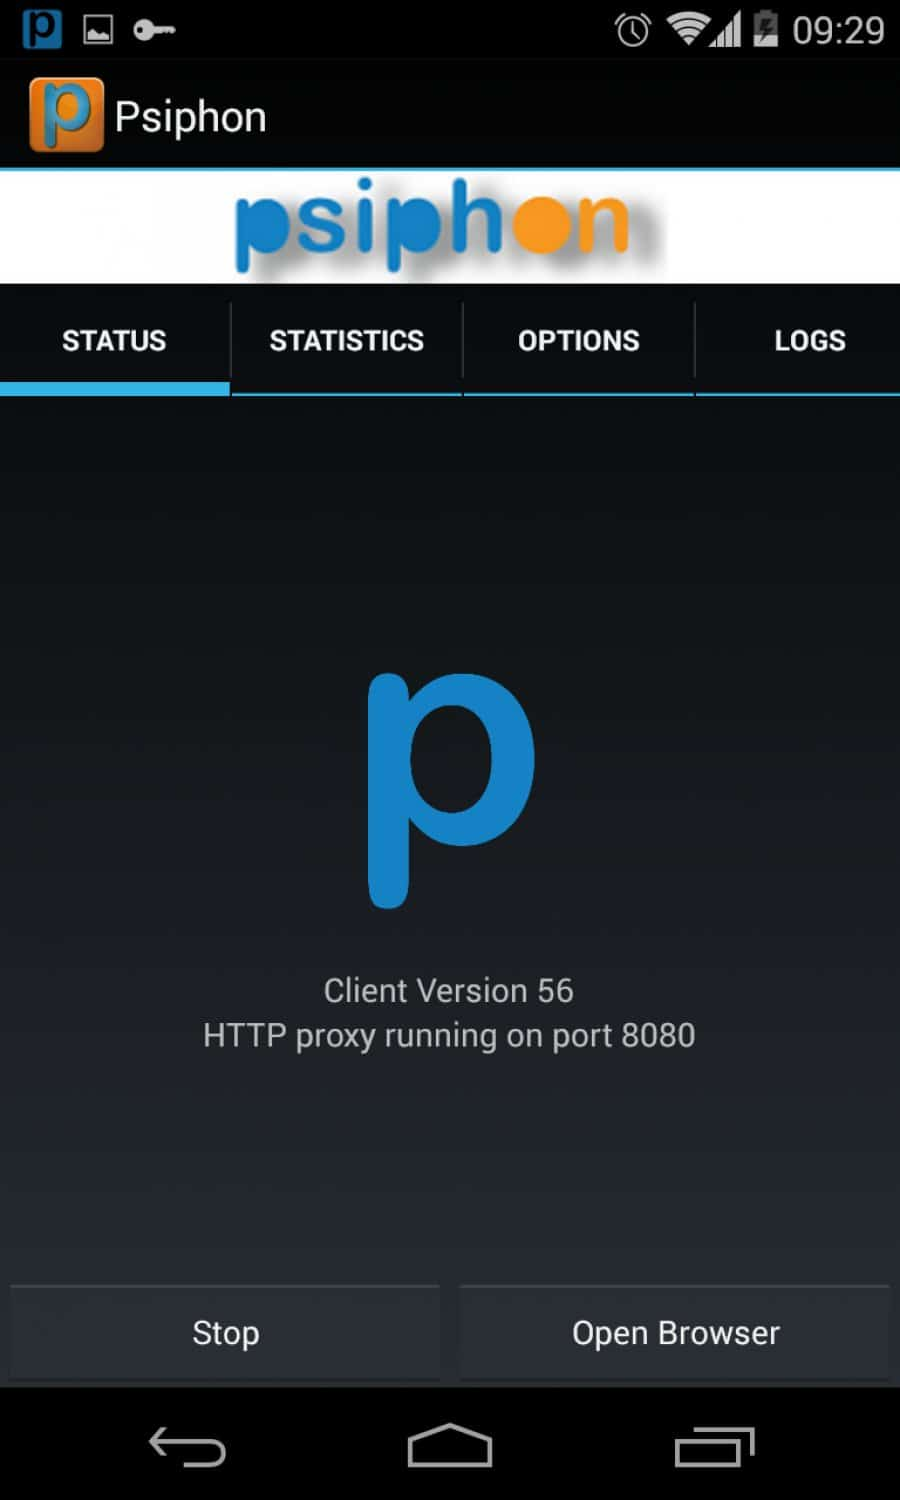 psiphon internet gratis android trucos